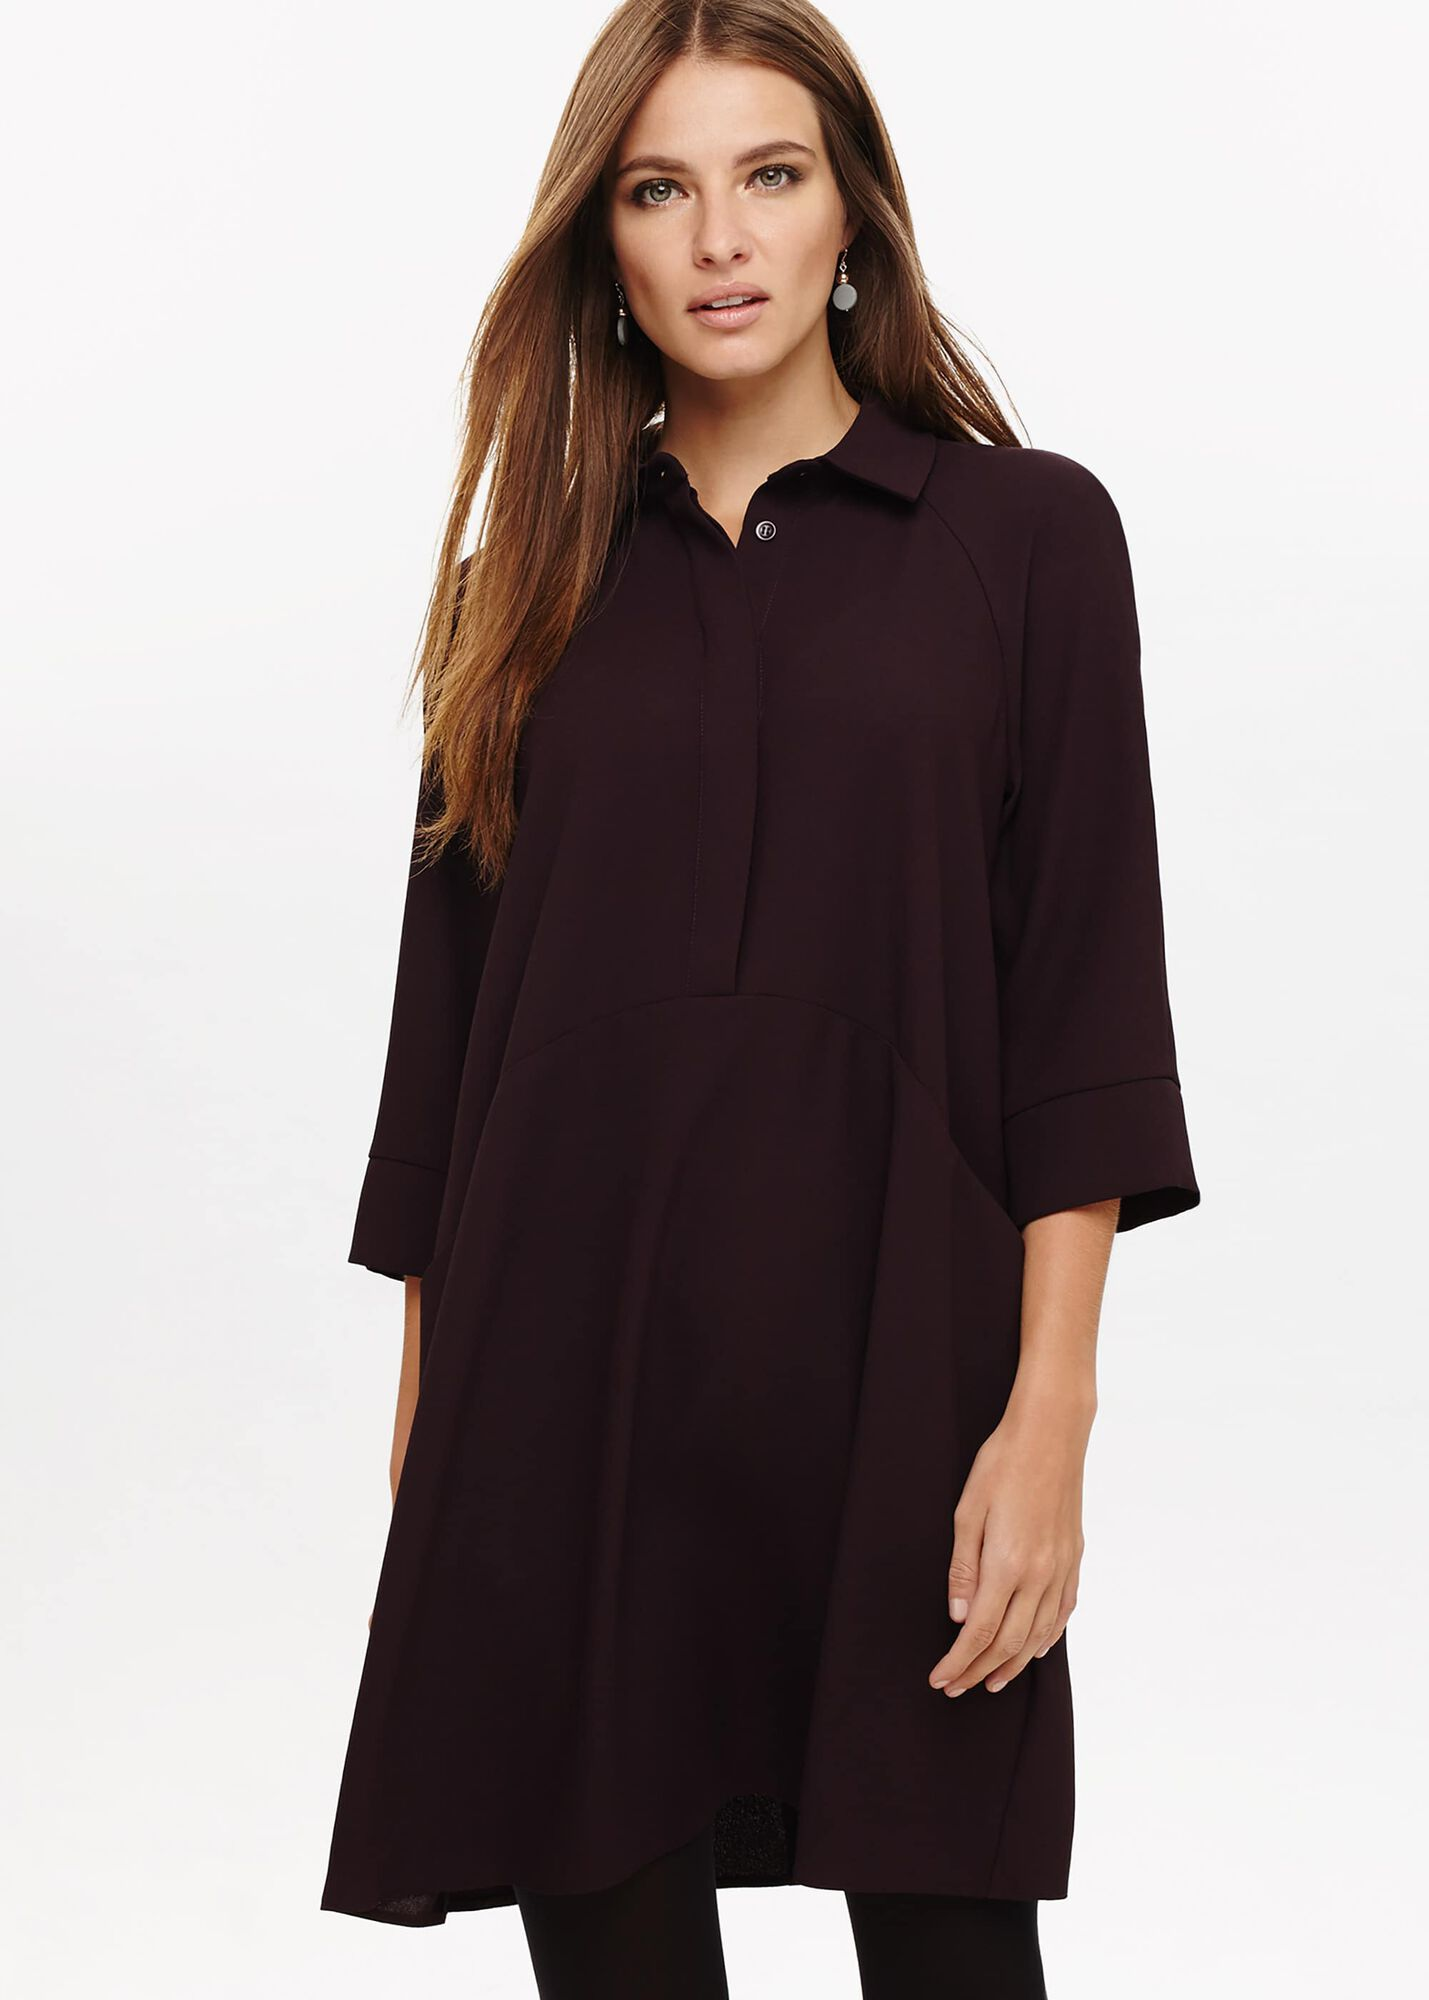 637c79a7bb027 Bella Swing Dress   Phase Eight   Phase Eight